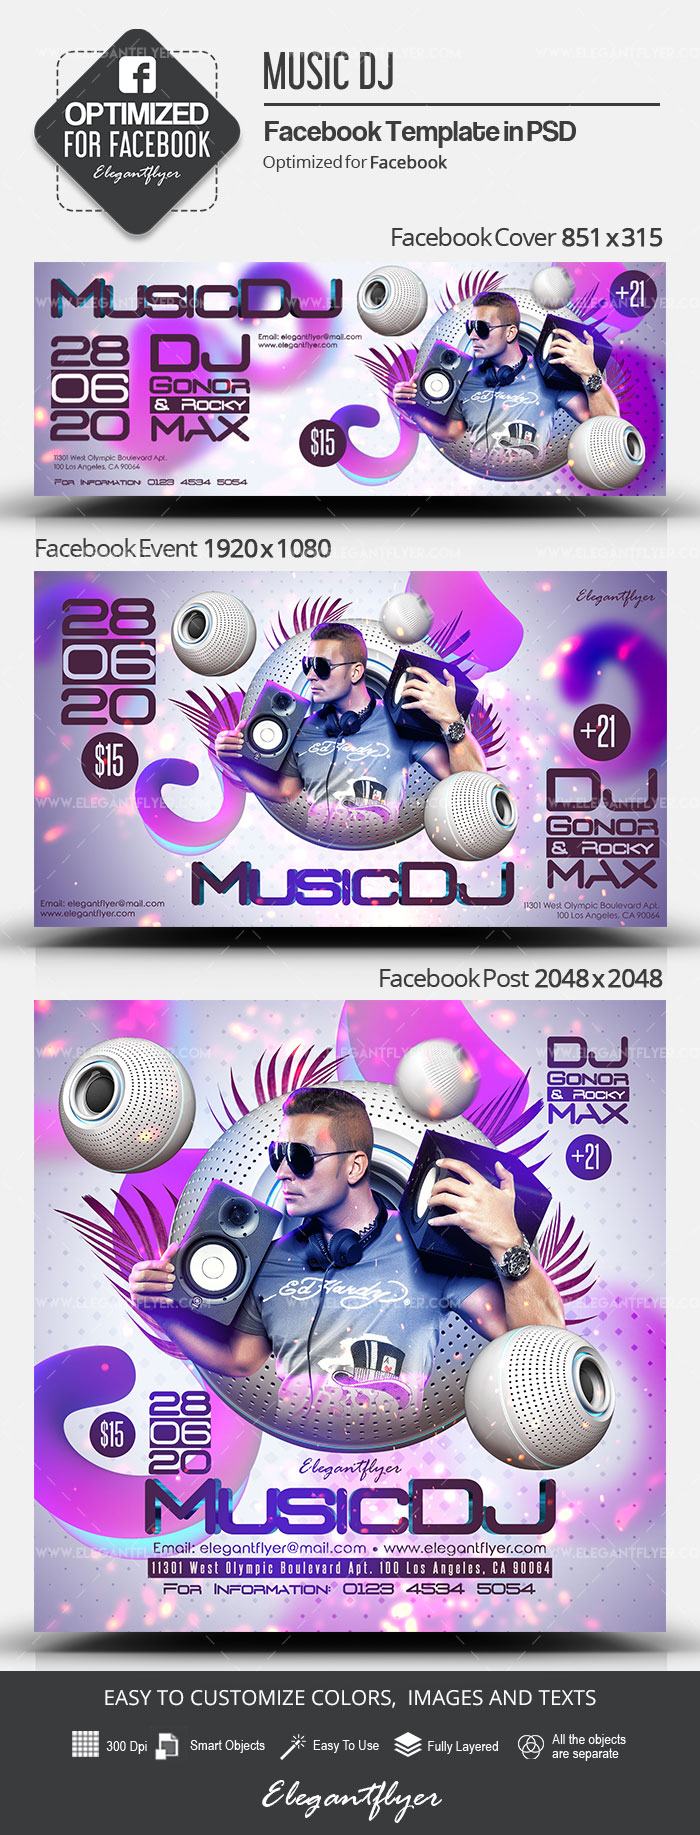 Music DJ – Facebook Cover Template in PSD + Post + Event cover